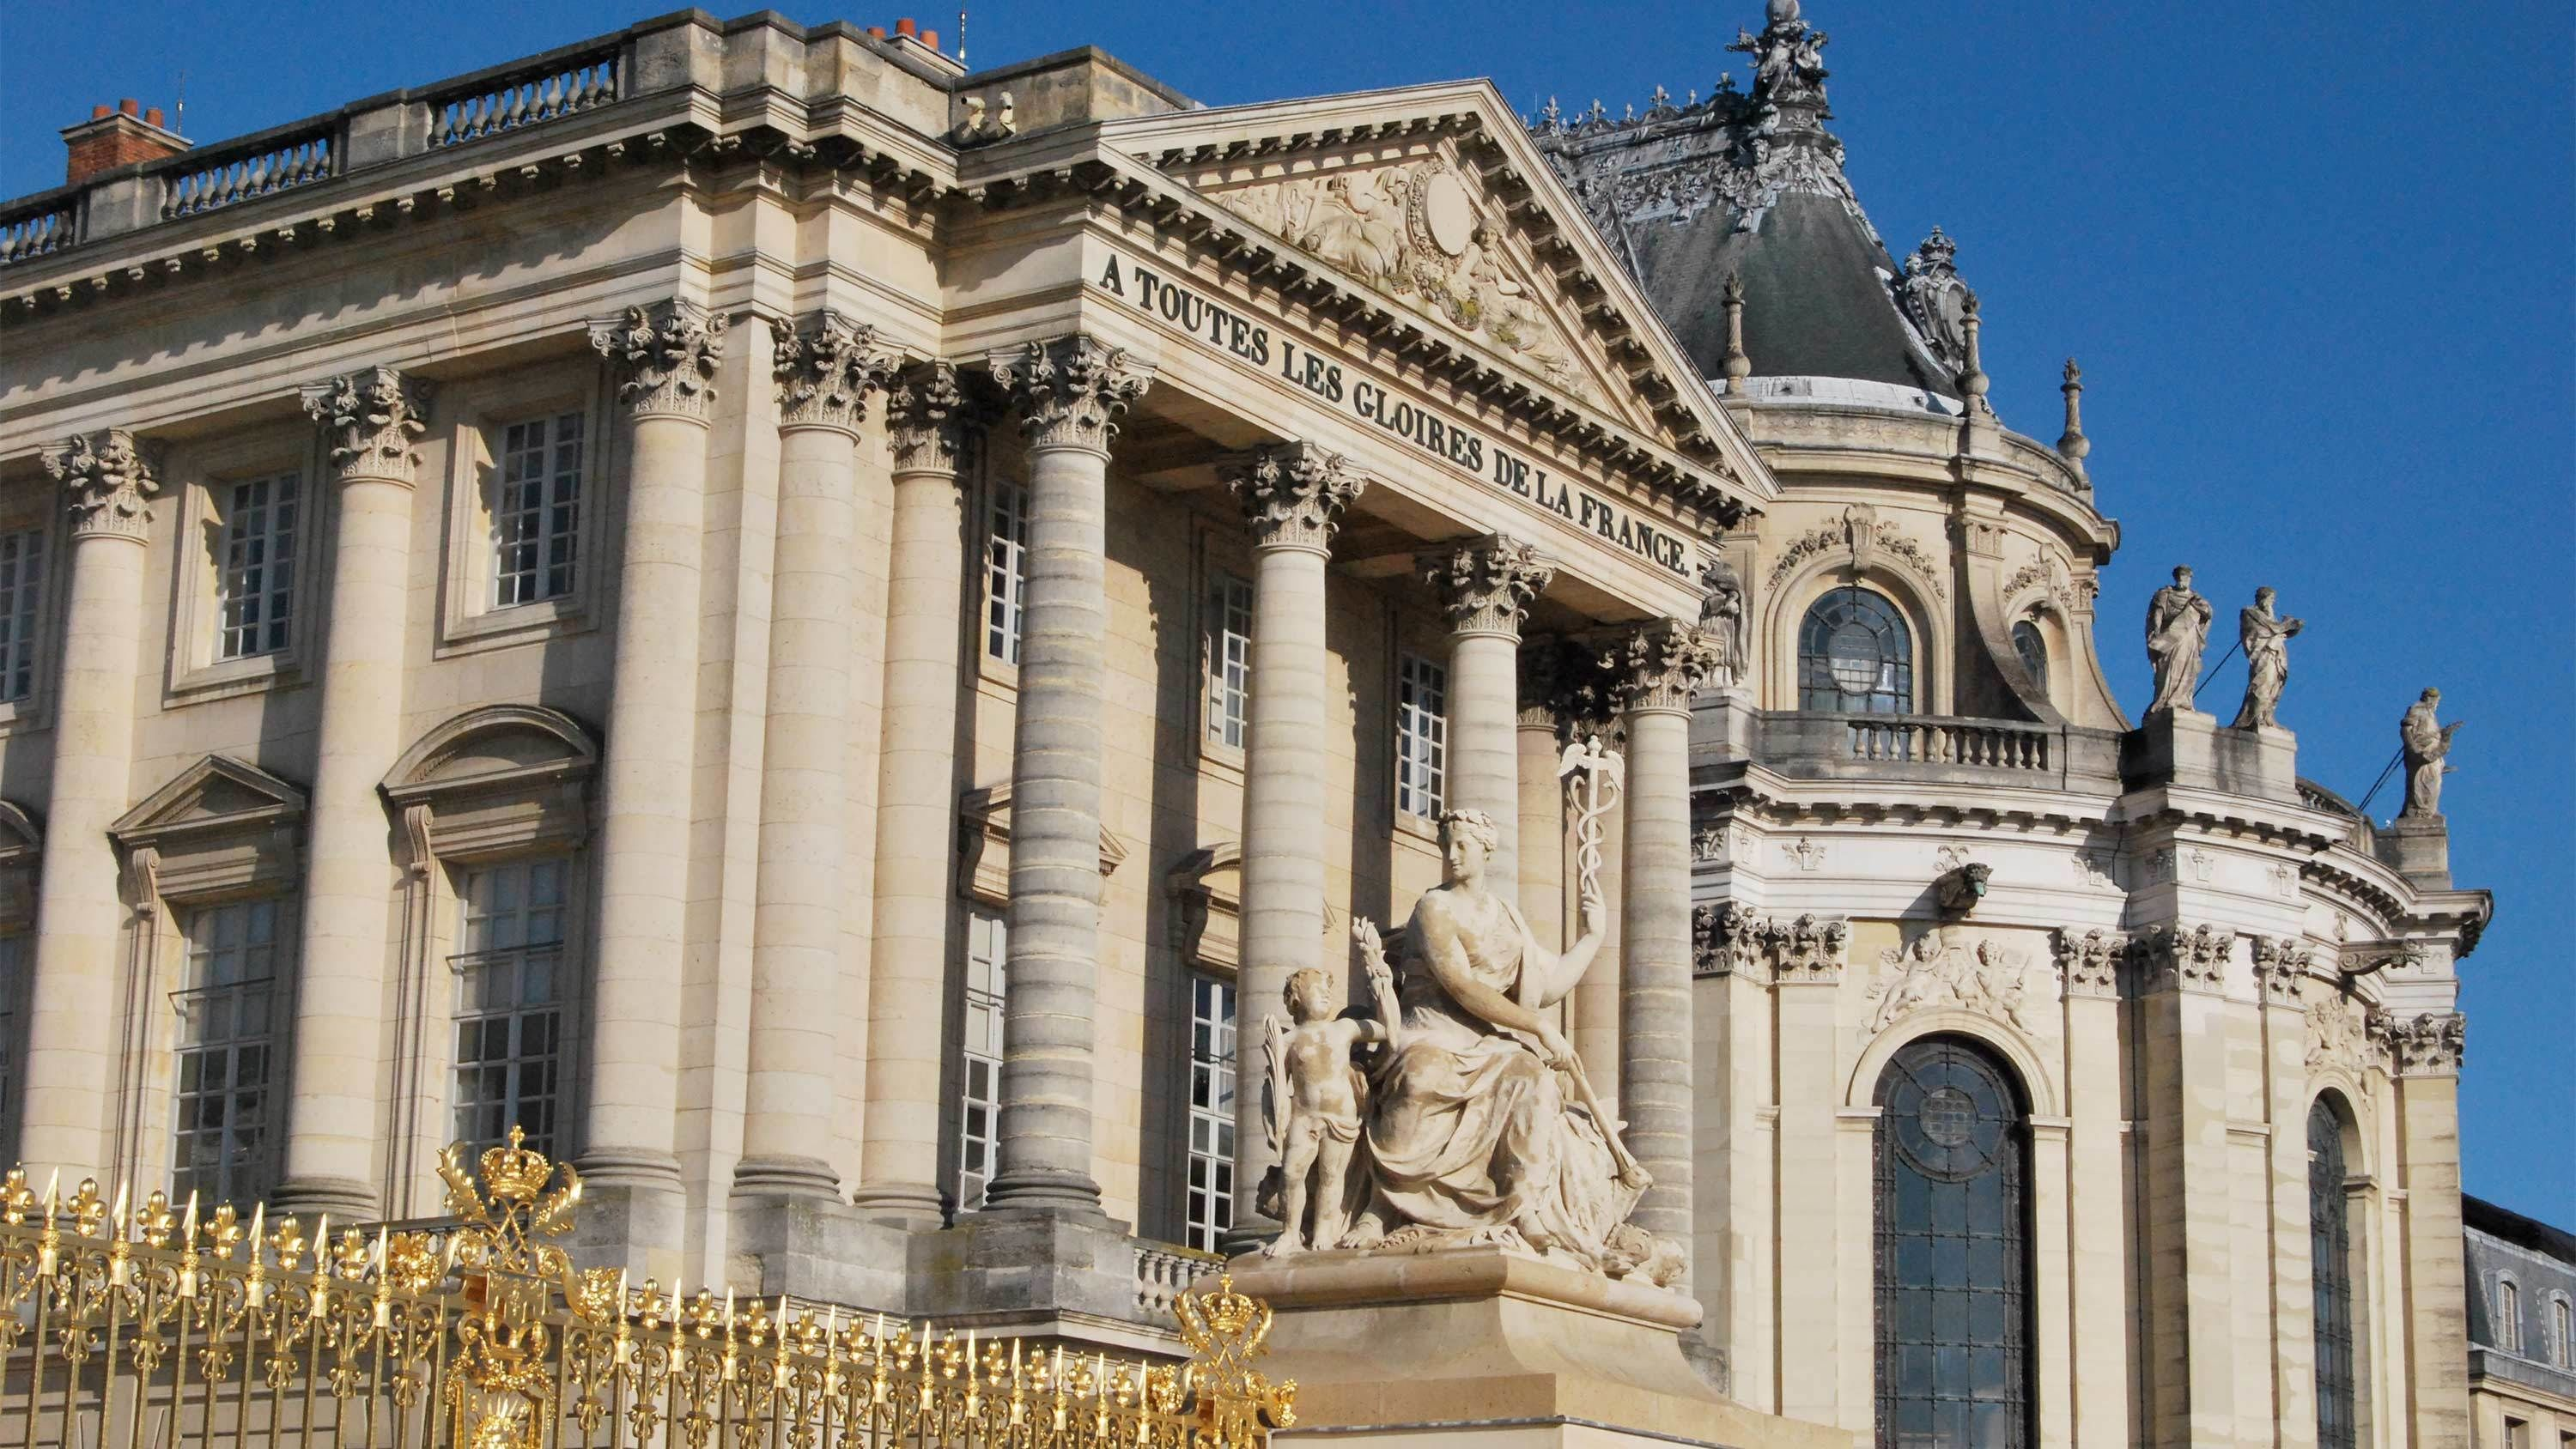 Skip the Line: Small-Group Guided Tour of Versailles Palace from Paris